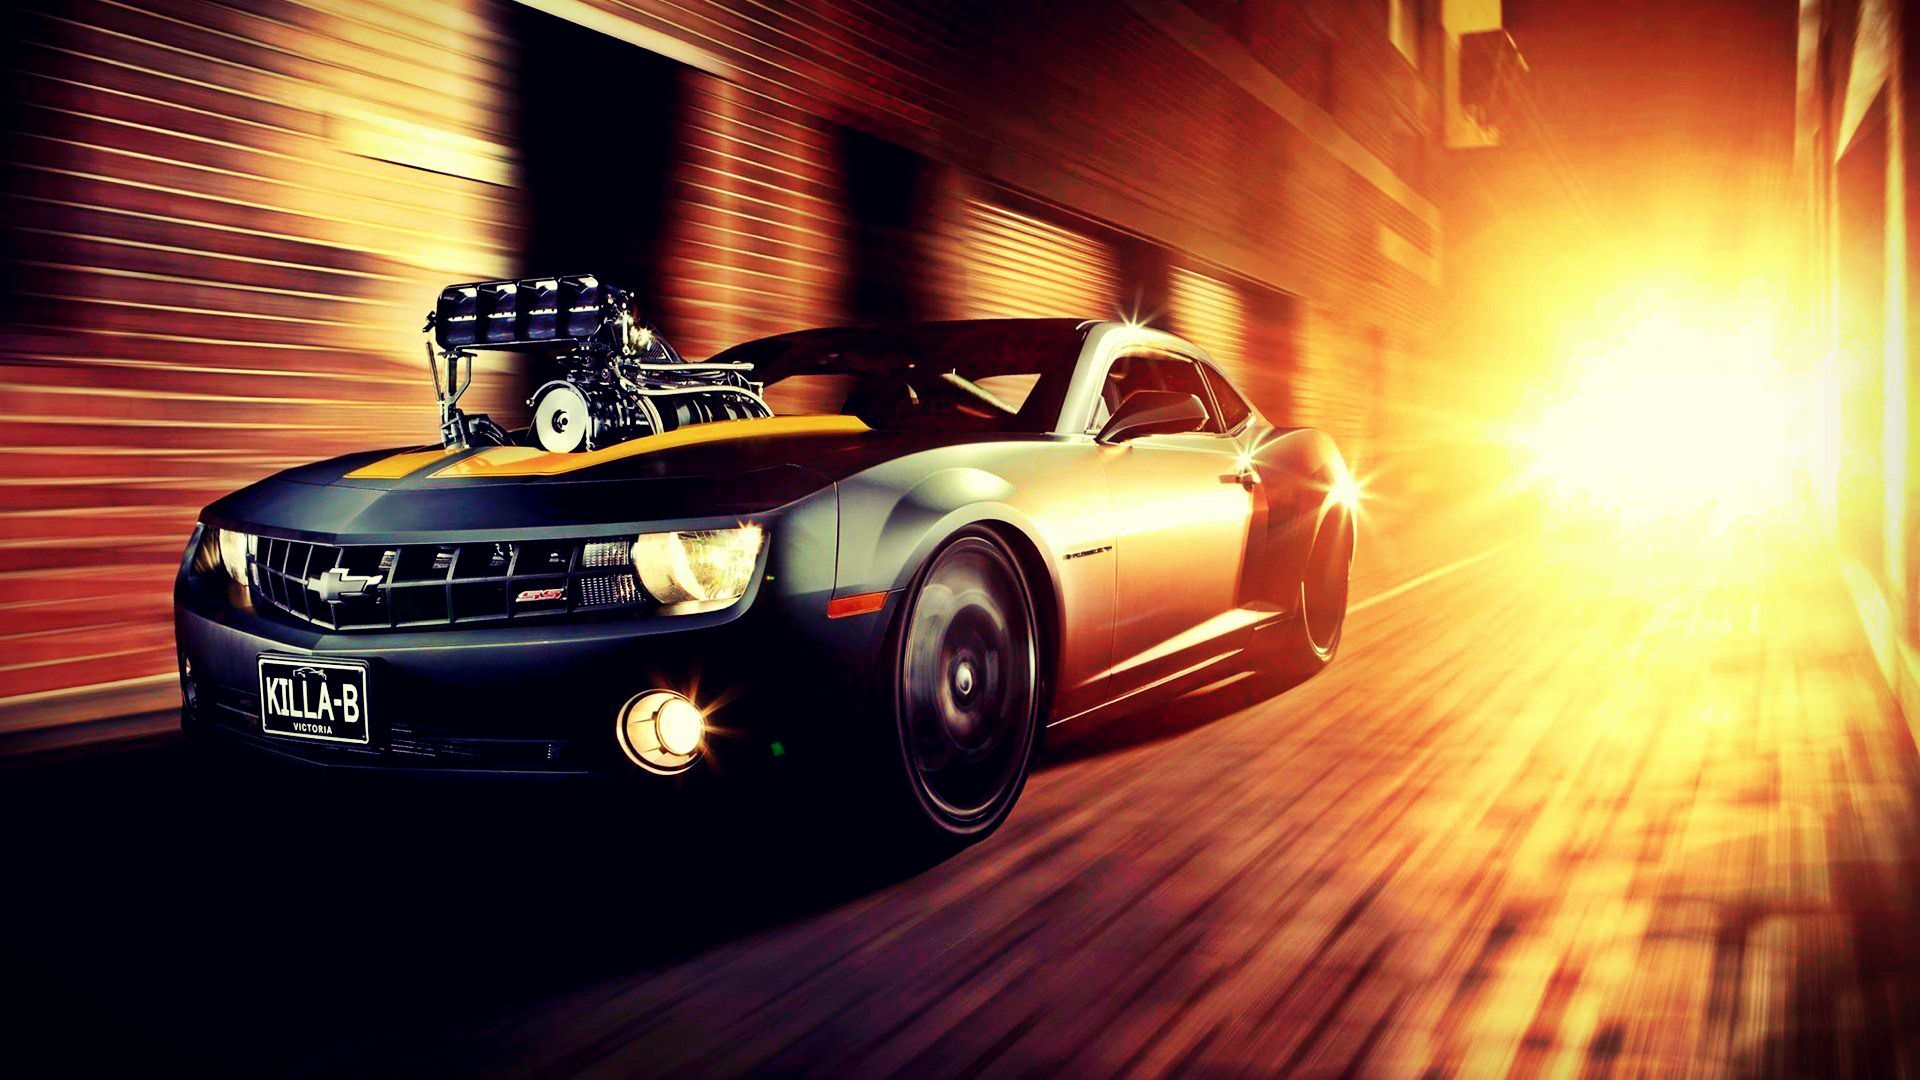 Cool 3d Basketball Wallpapers Awesome Car Wallpapers Pixelstalk Net